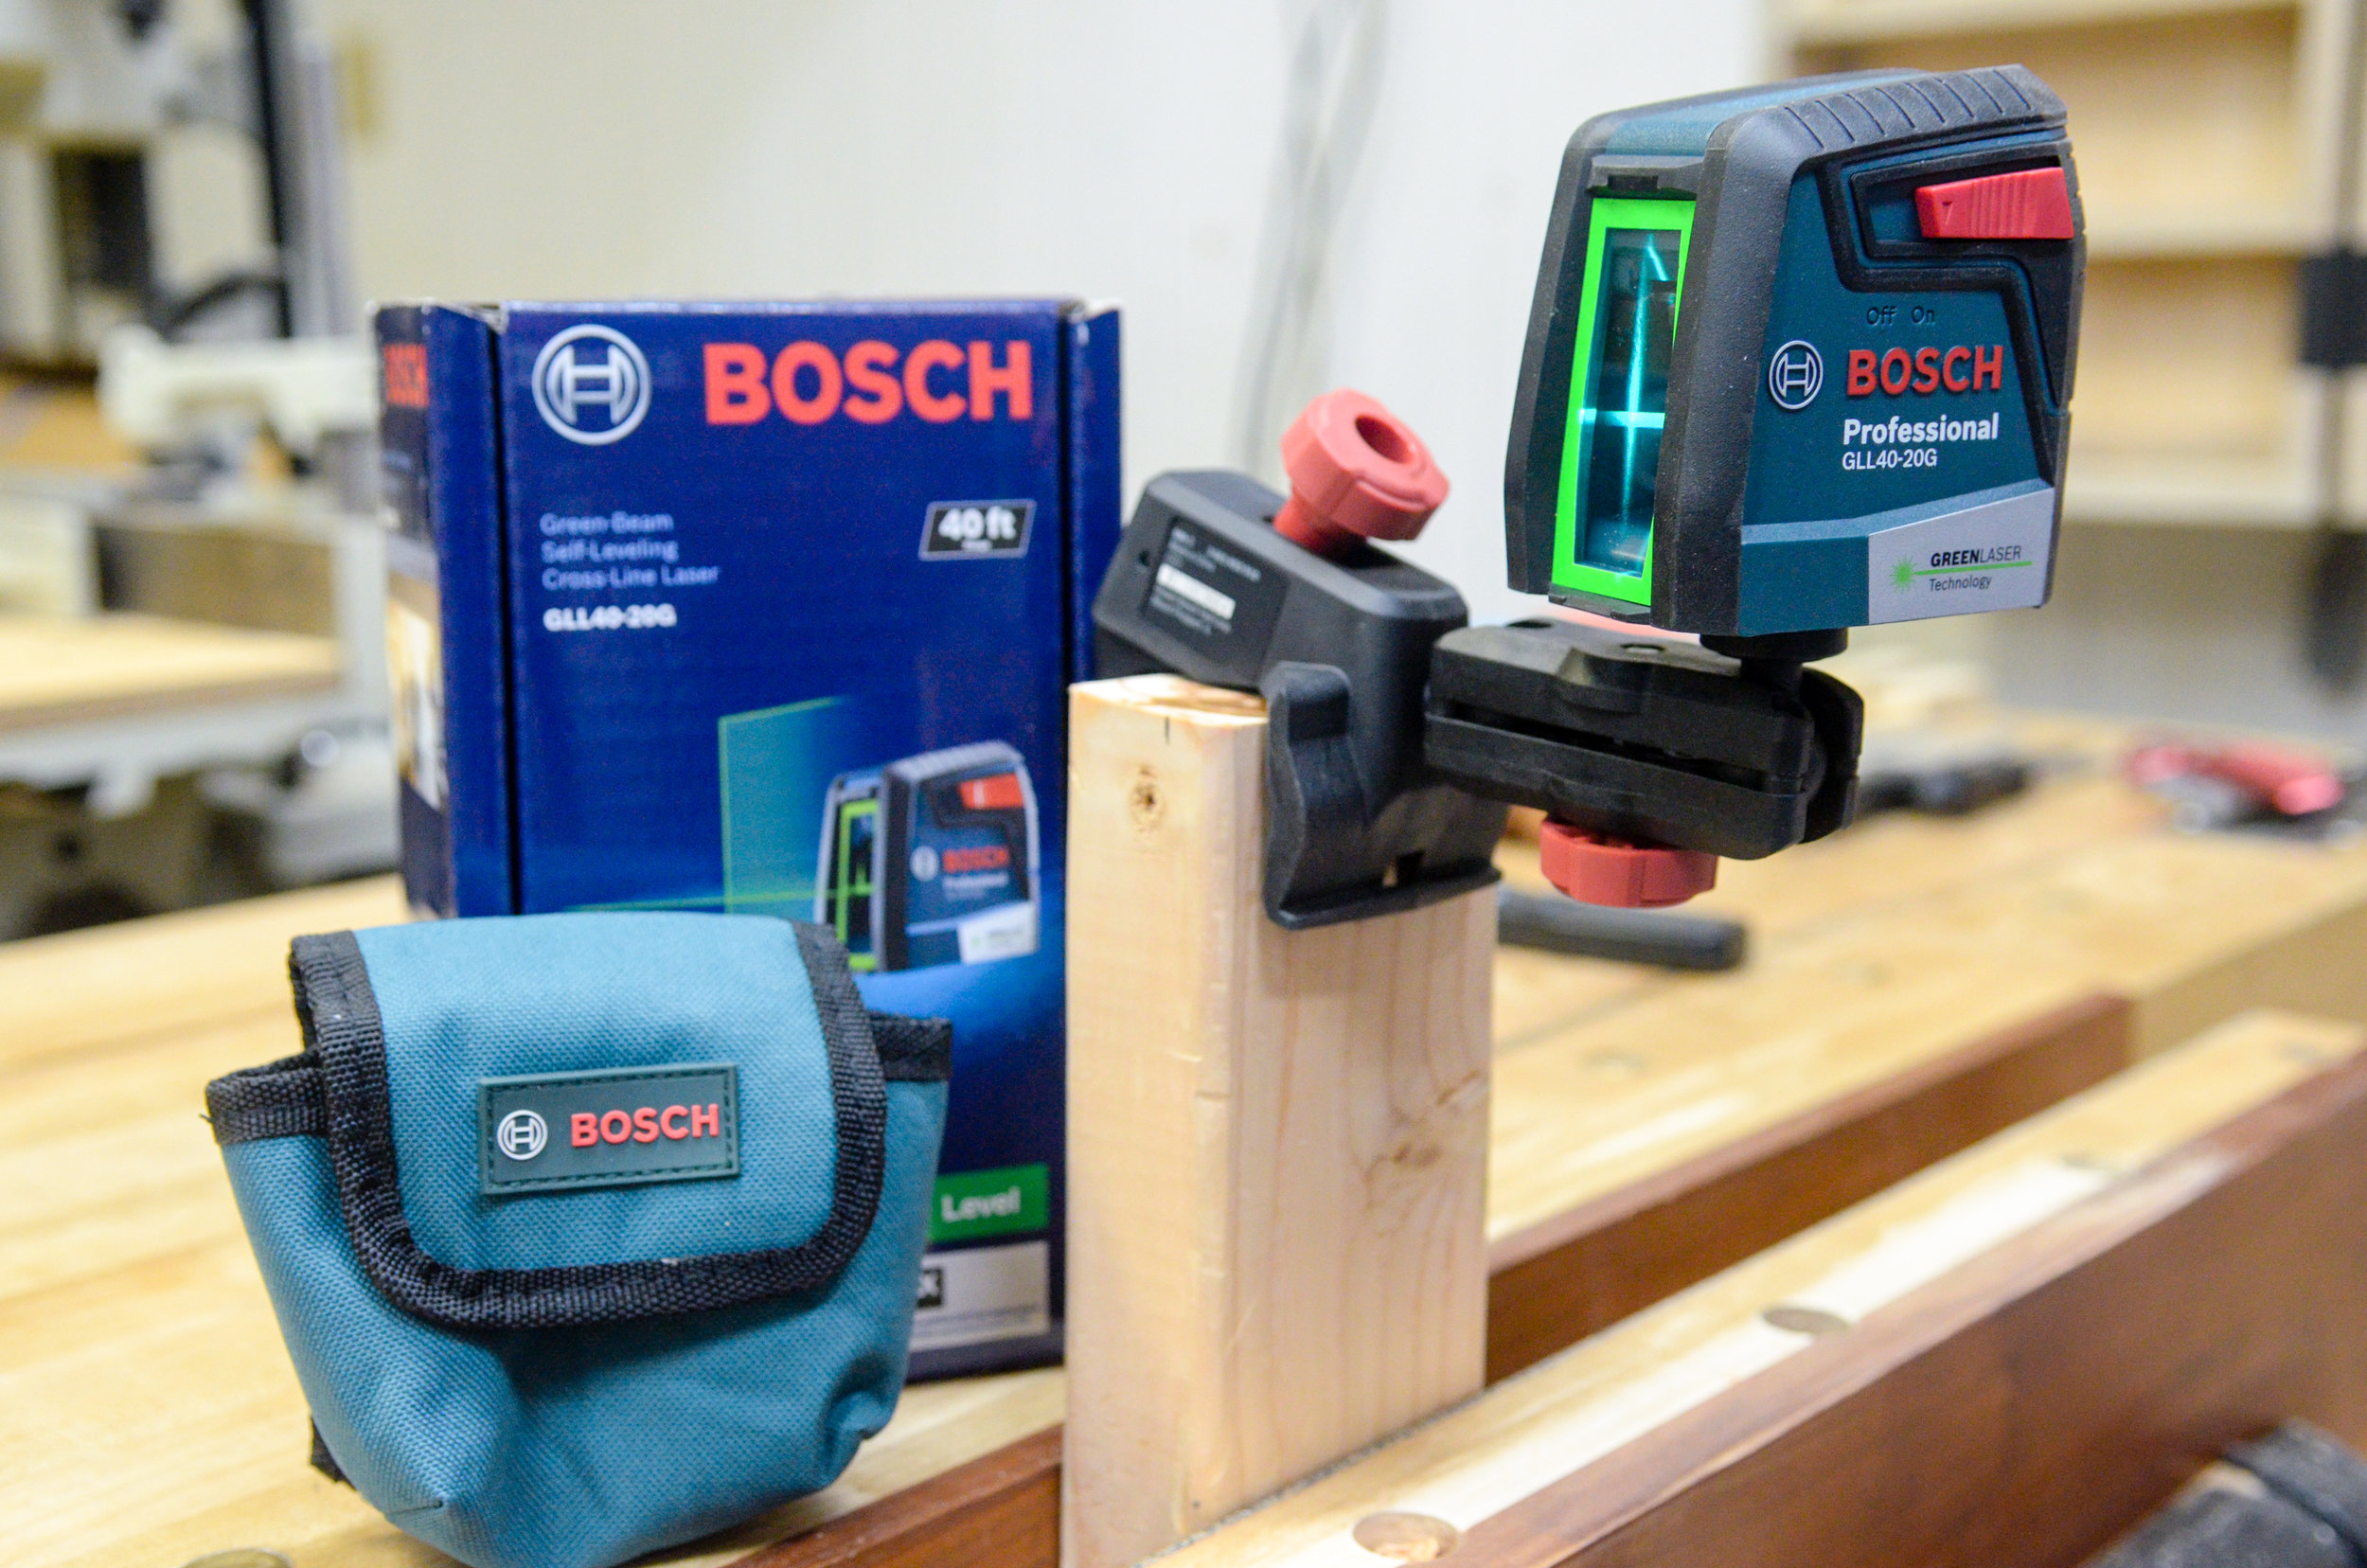 Bosch 40-ft laser level attached to the included mounting bracket.